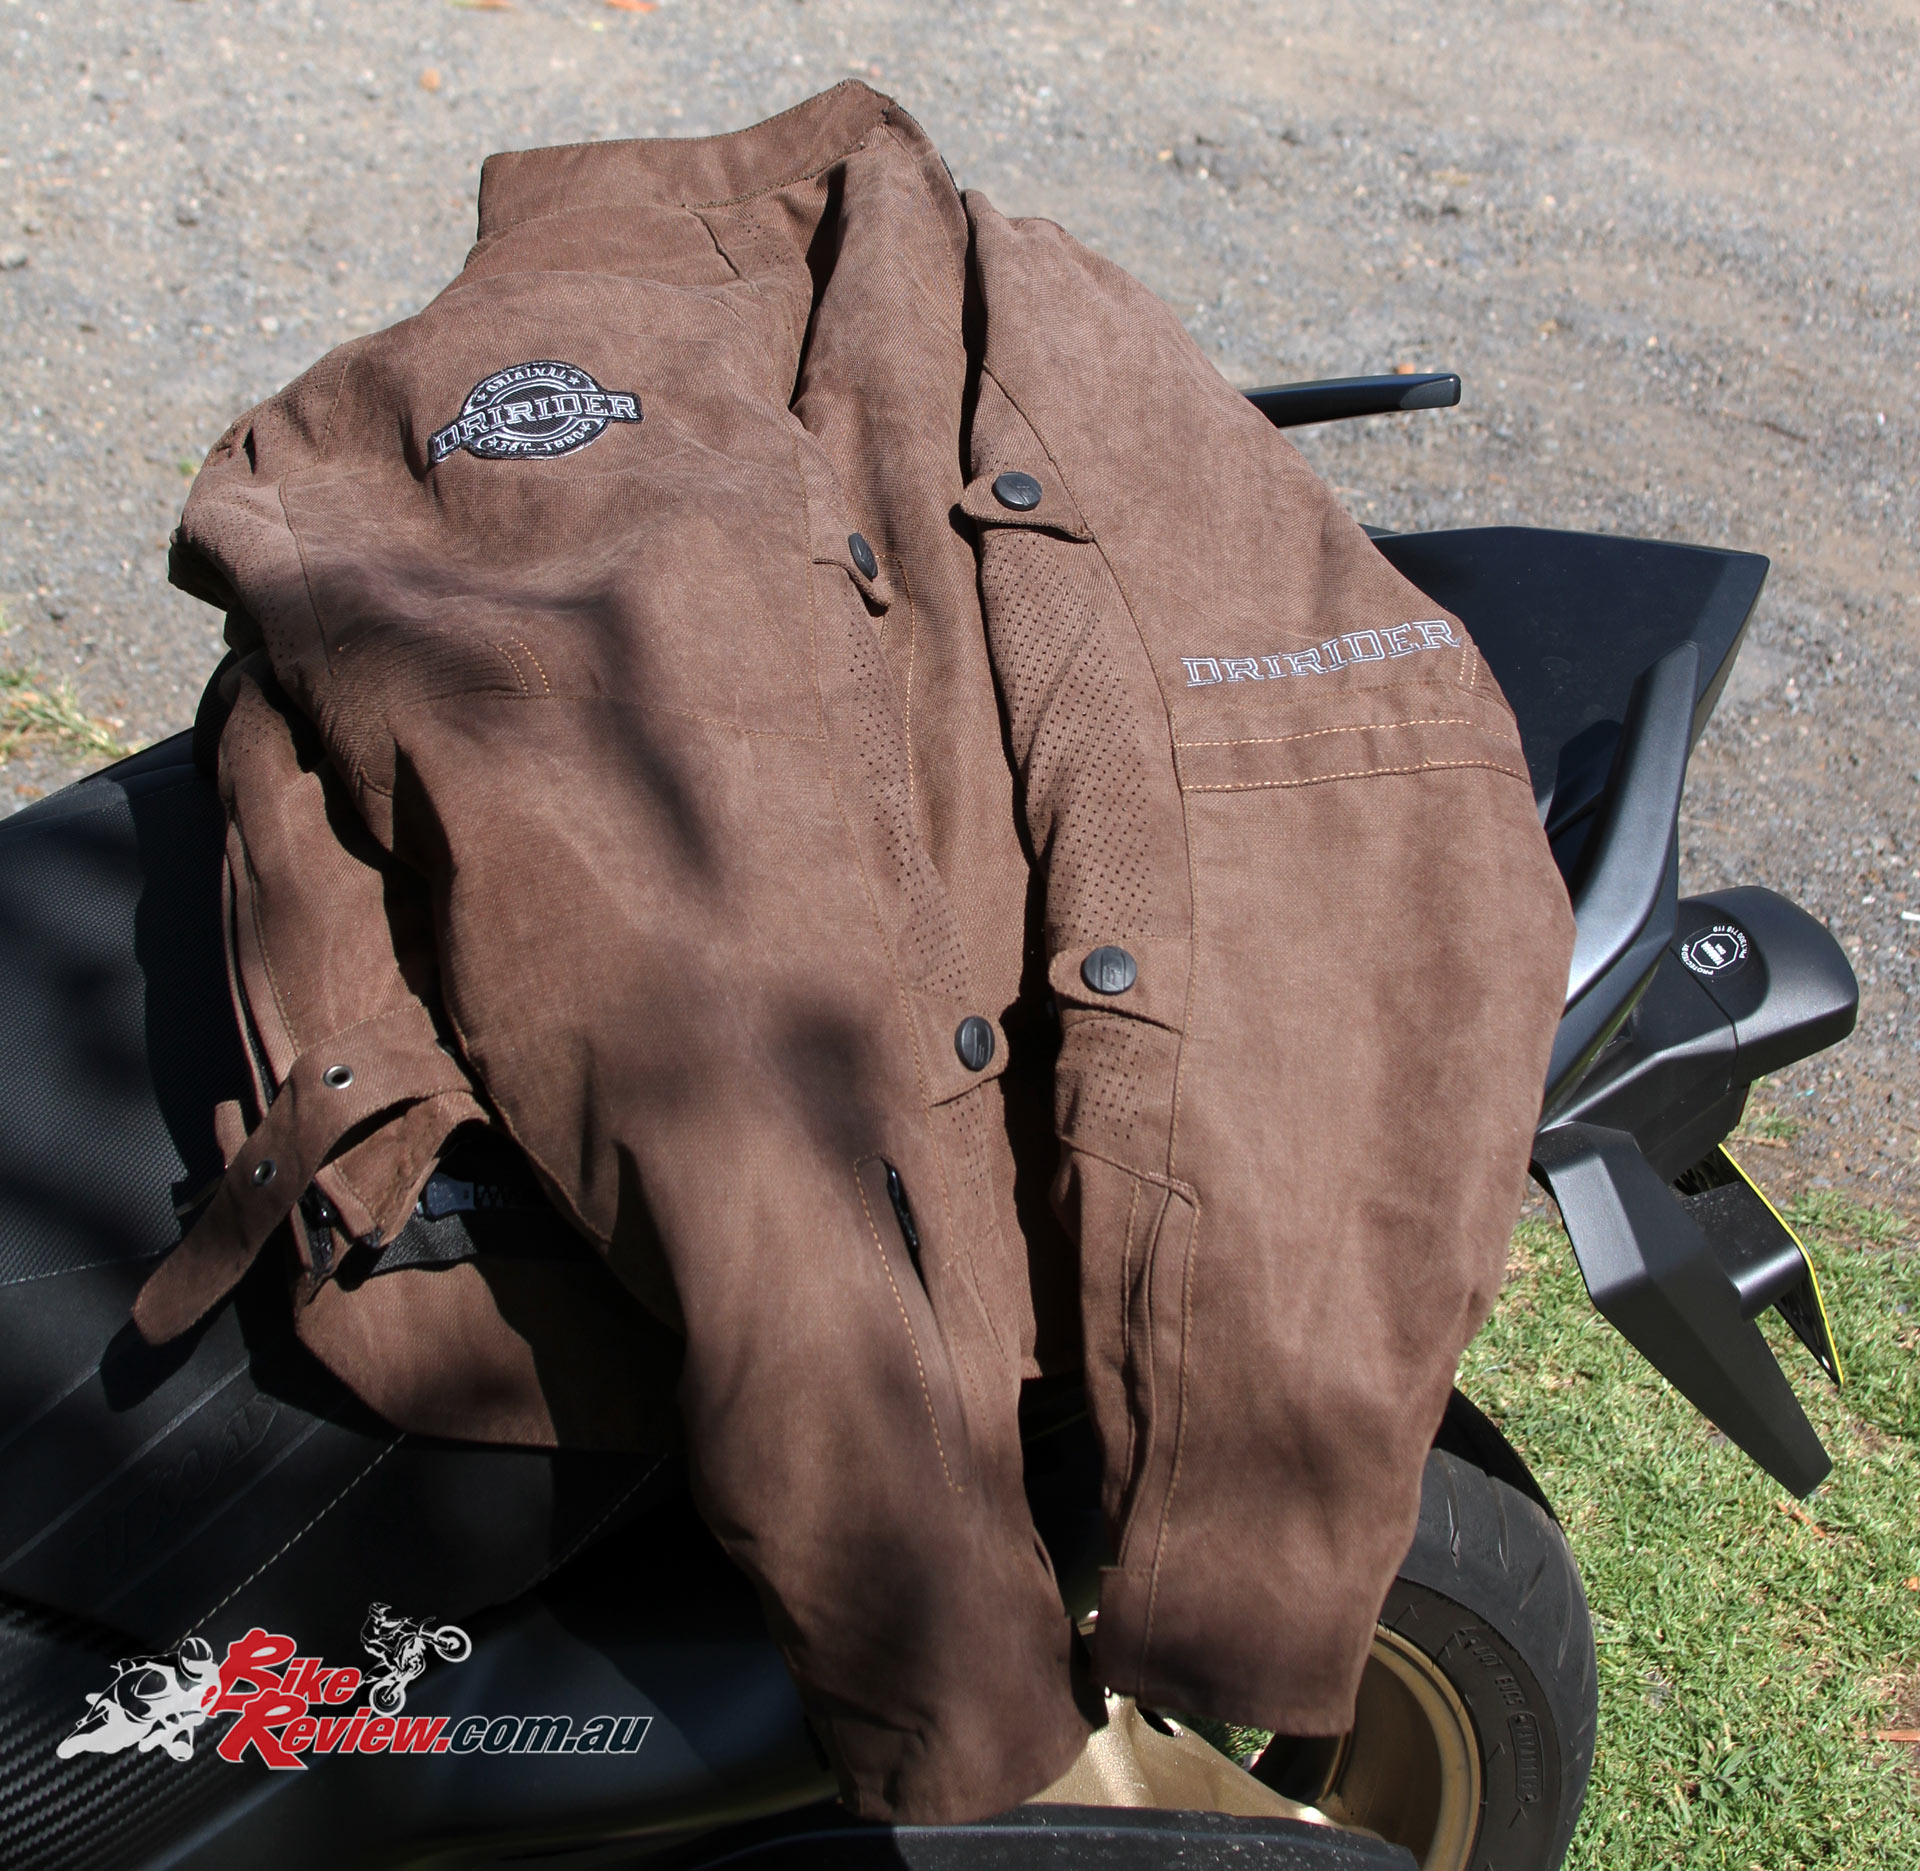 DriRider Scrambler jacket, brown